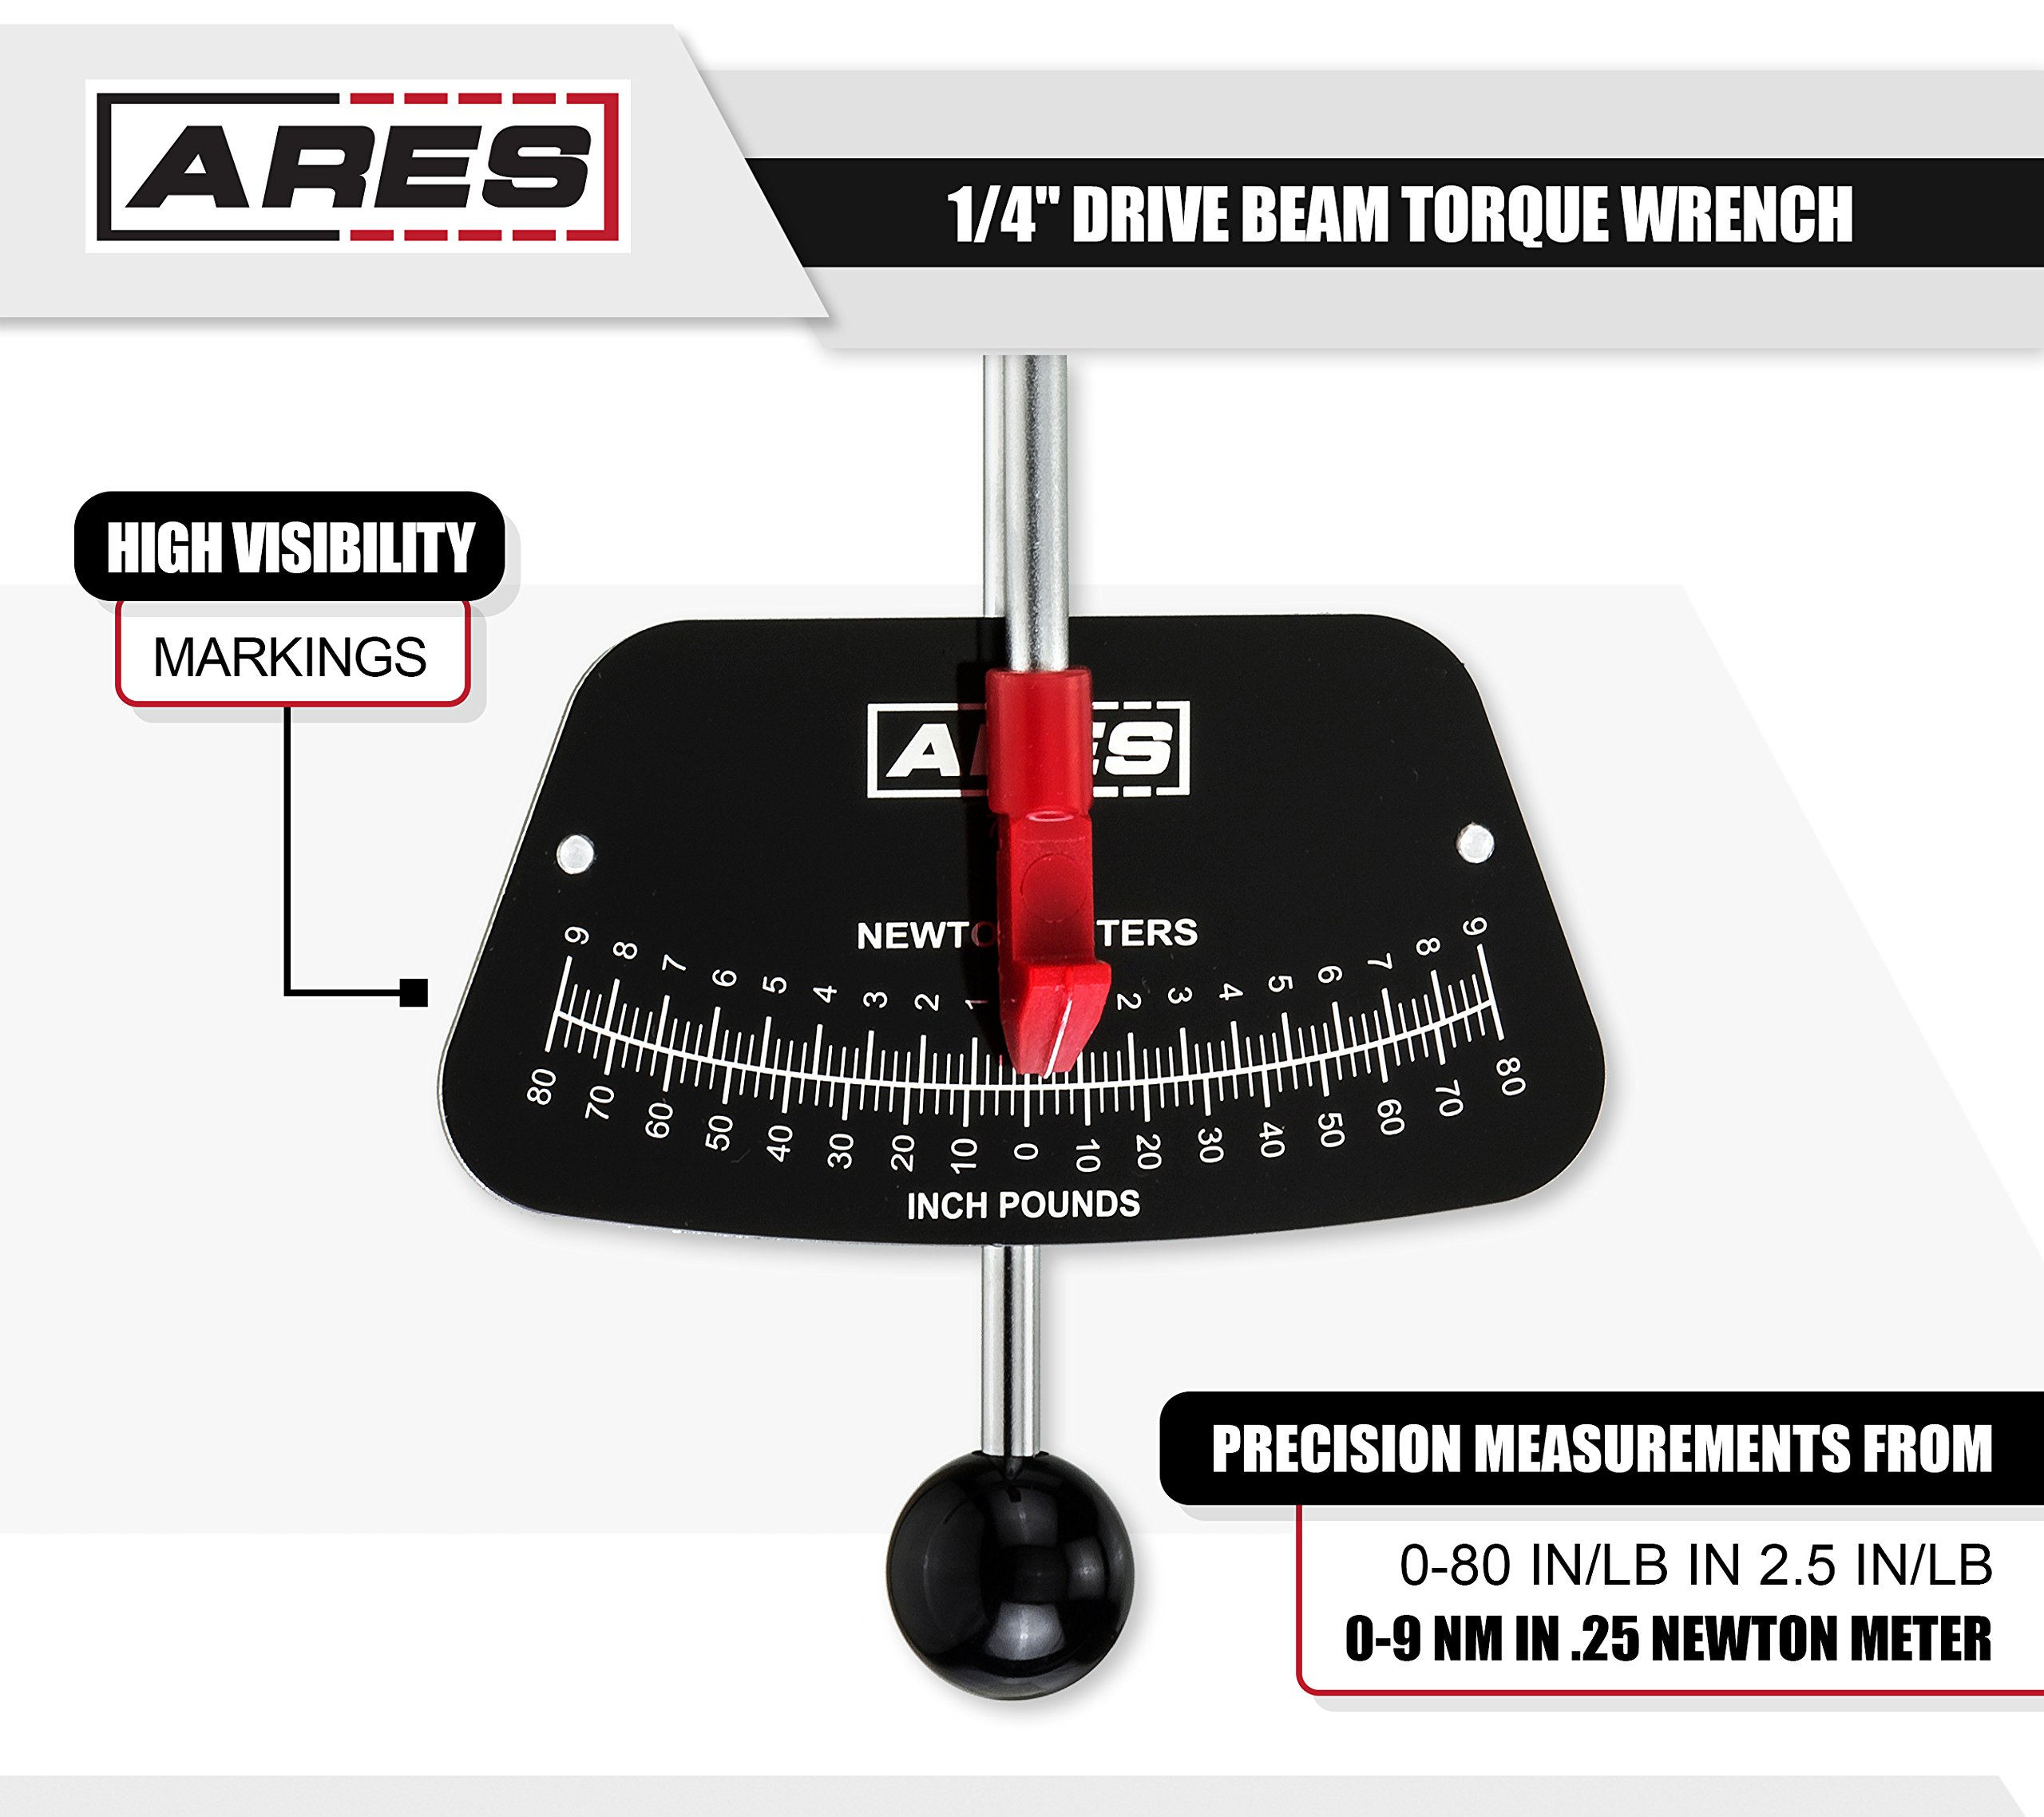 ARES 70213 | 1/4-inch Drive Beam Torque Wrench | 0-80 in/lb and 0-9 Newton Meter Torque Wrench | High Visibility Markings for Easy Readings by ARES (Image #3)